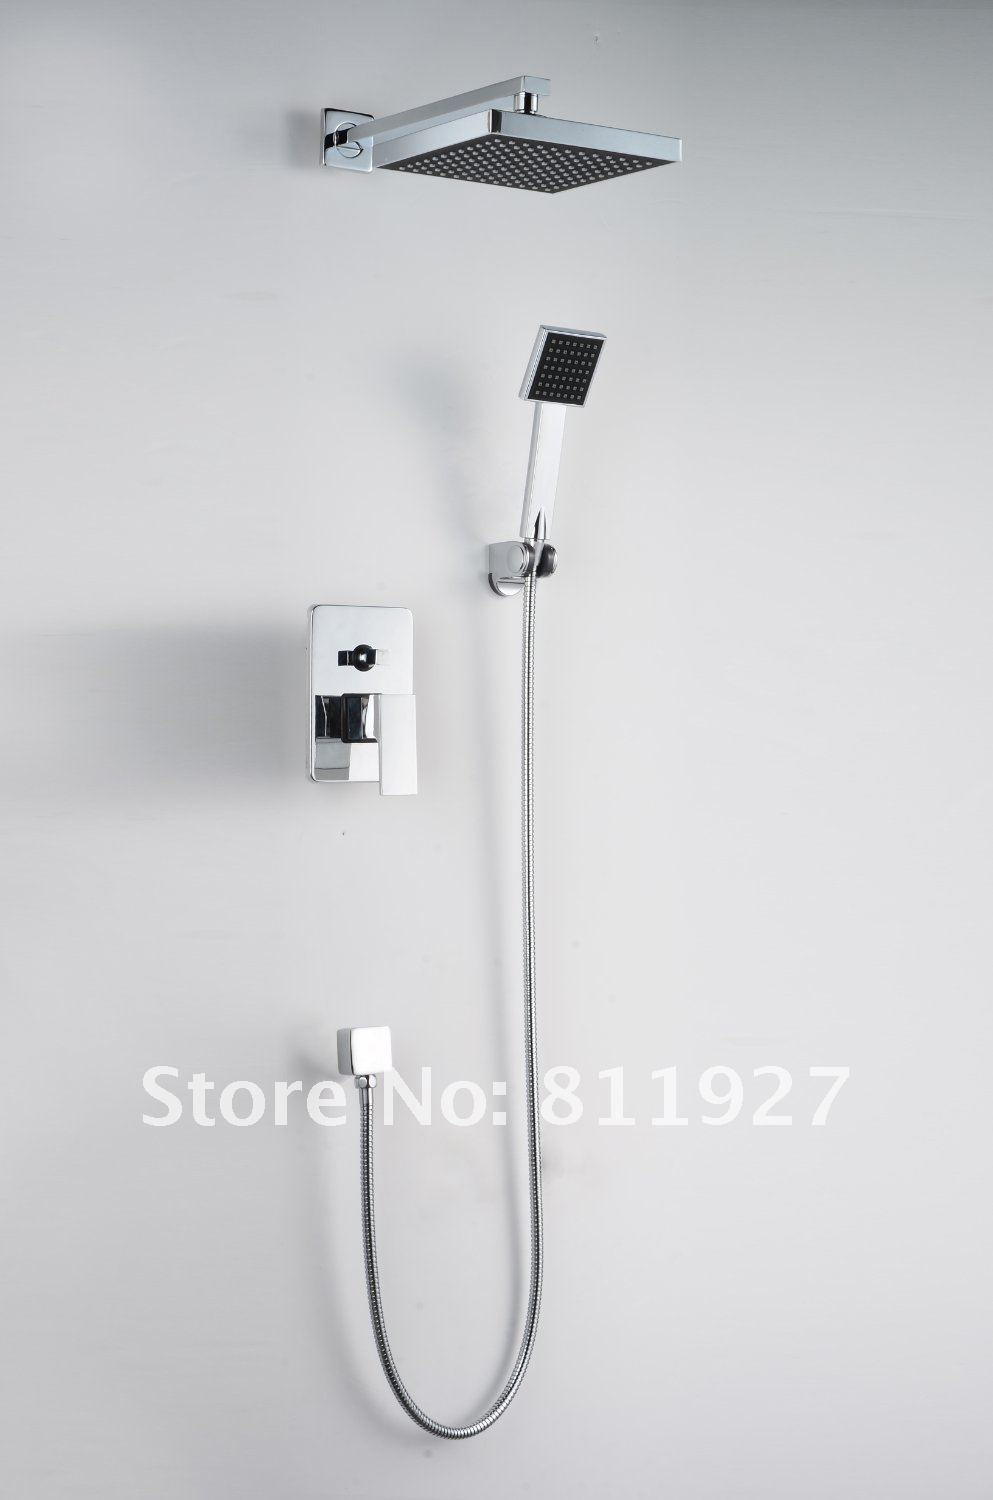 Polish Chrome Rainfall Square Head Shower Bathroom Shower Set Faucet Tub Mixer Tap Hand Shower Wall Mounted mojue thermostatic mixer shower chrome design bathroom tub mixer sink faucet wall mounted brassthermostat faucet mj8246